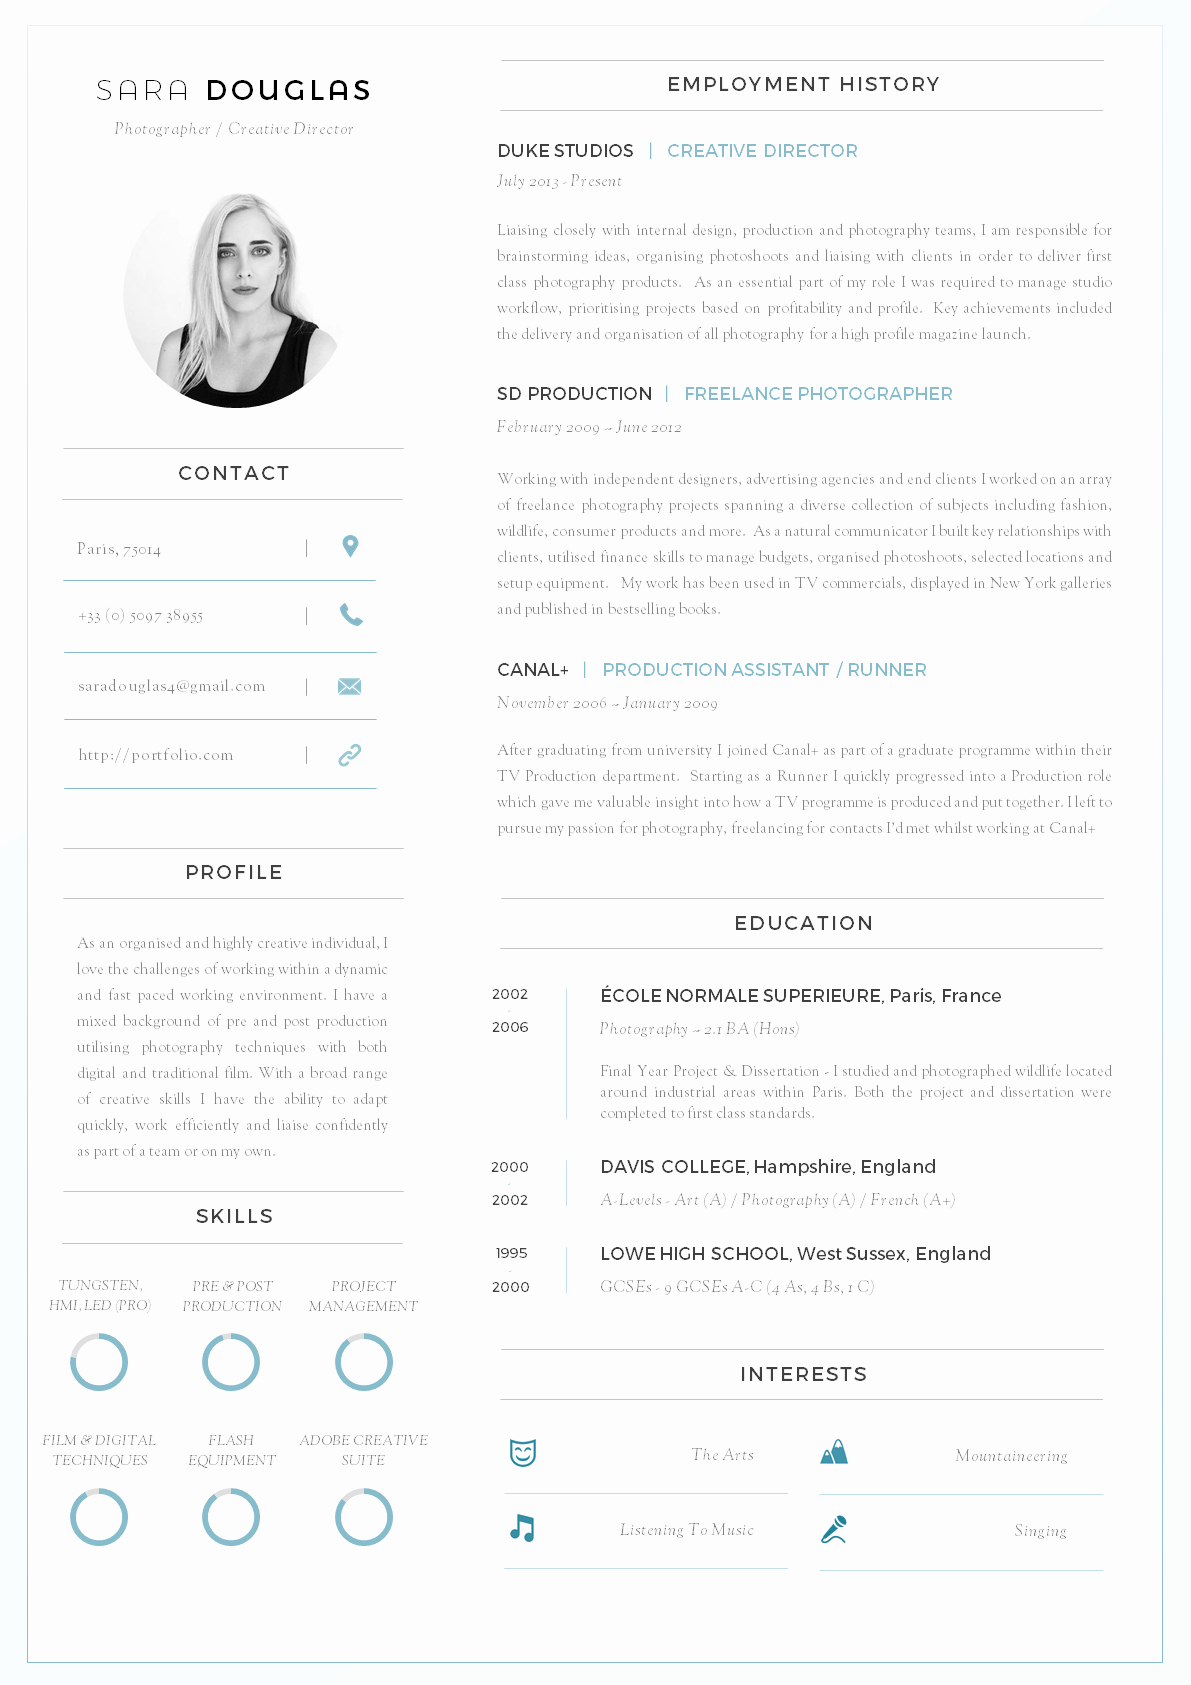 Professional Curriculum Vitae Template Download Beautiful 43 Modern Resume Templates